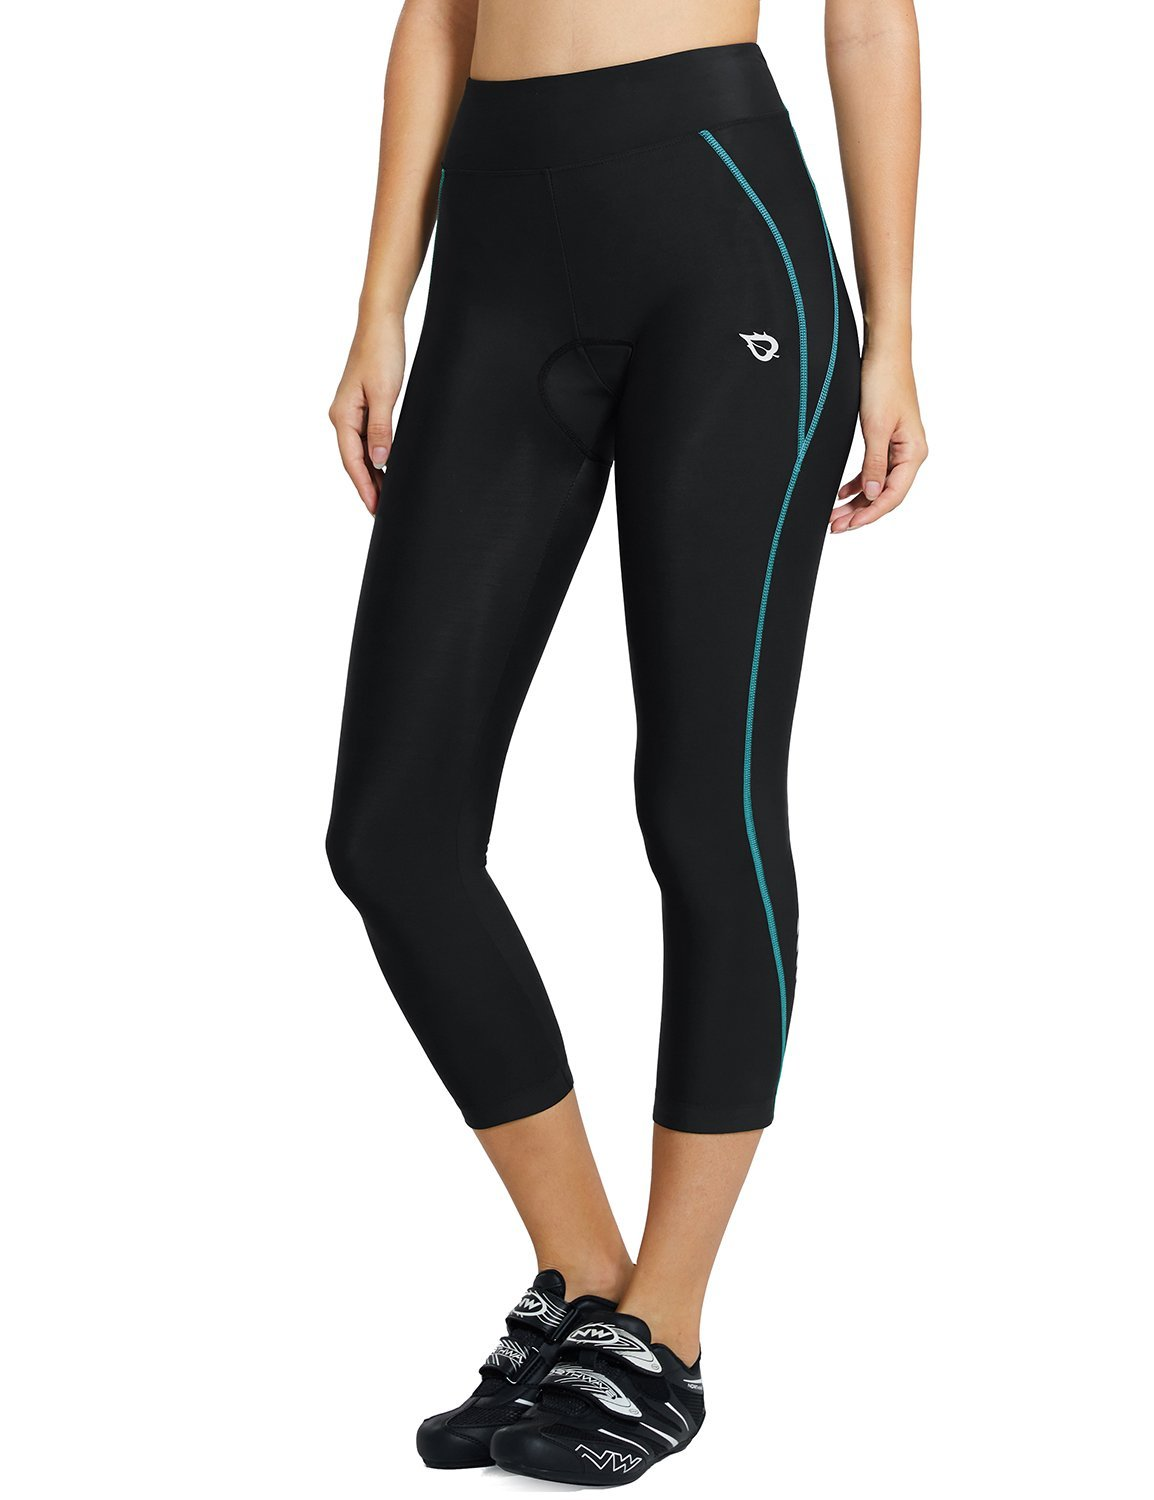 Baleaf Women's 3D Padded UPF 50+ 3/4 Cycling Compression Tights Capris with Pocket Blue Line Size XXL by Baleaf